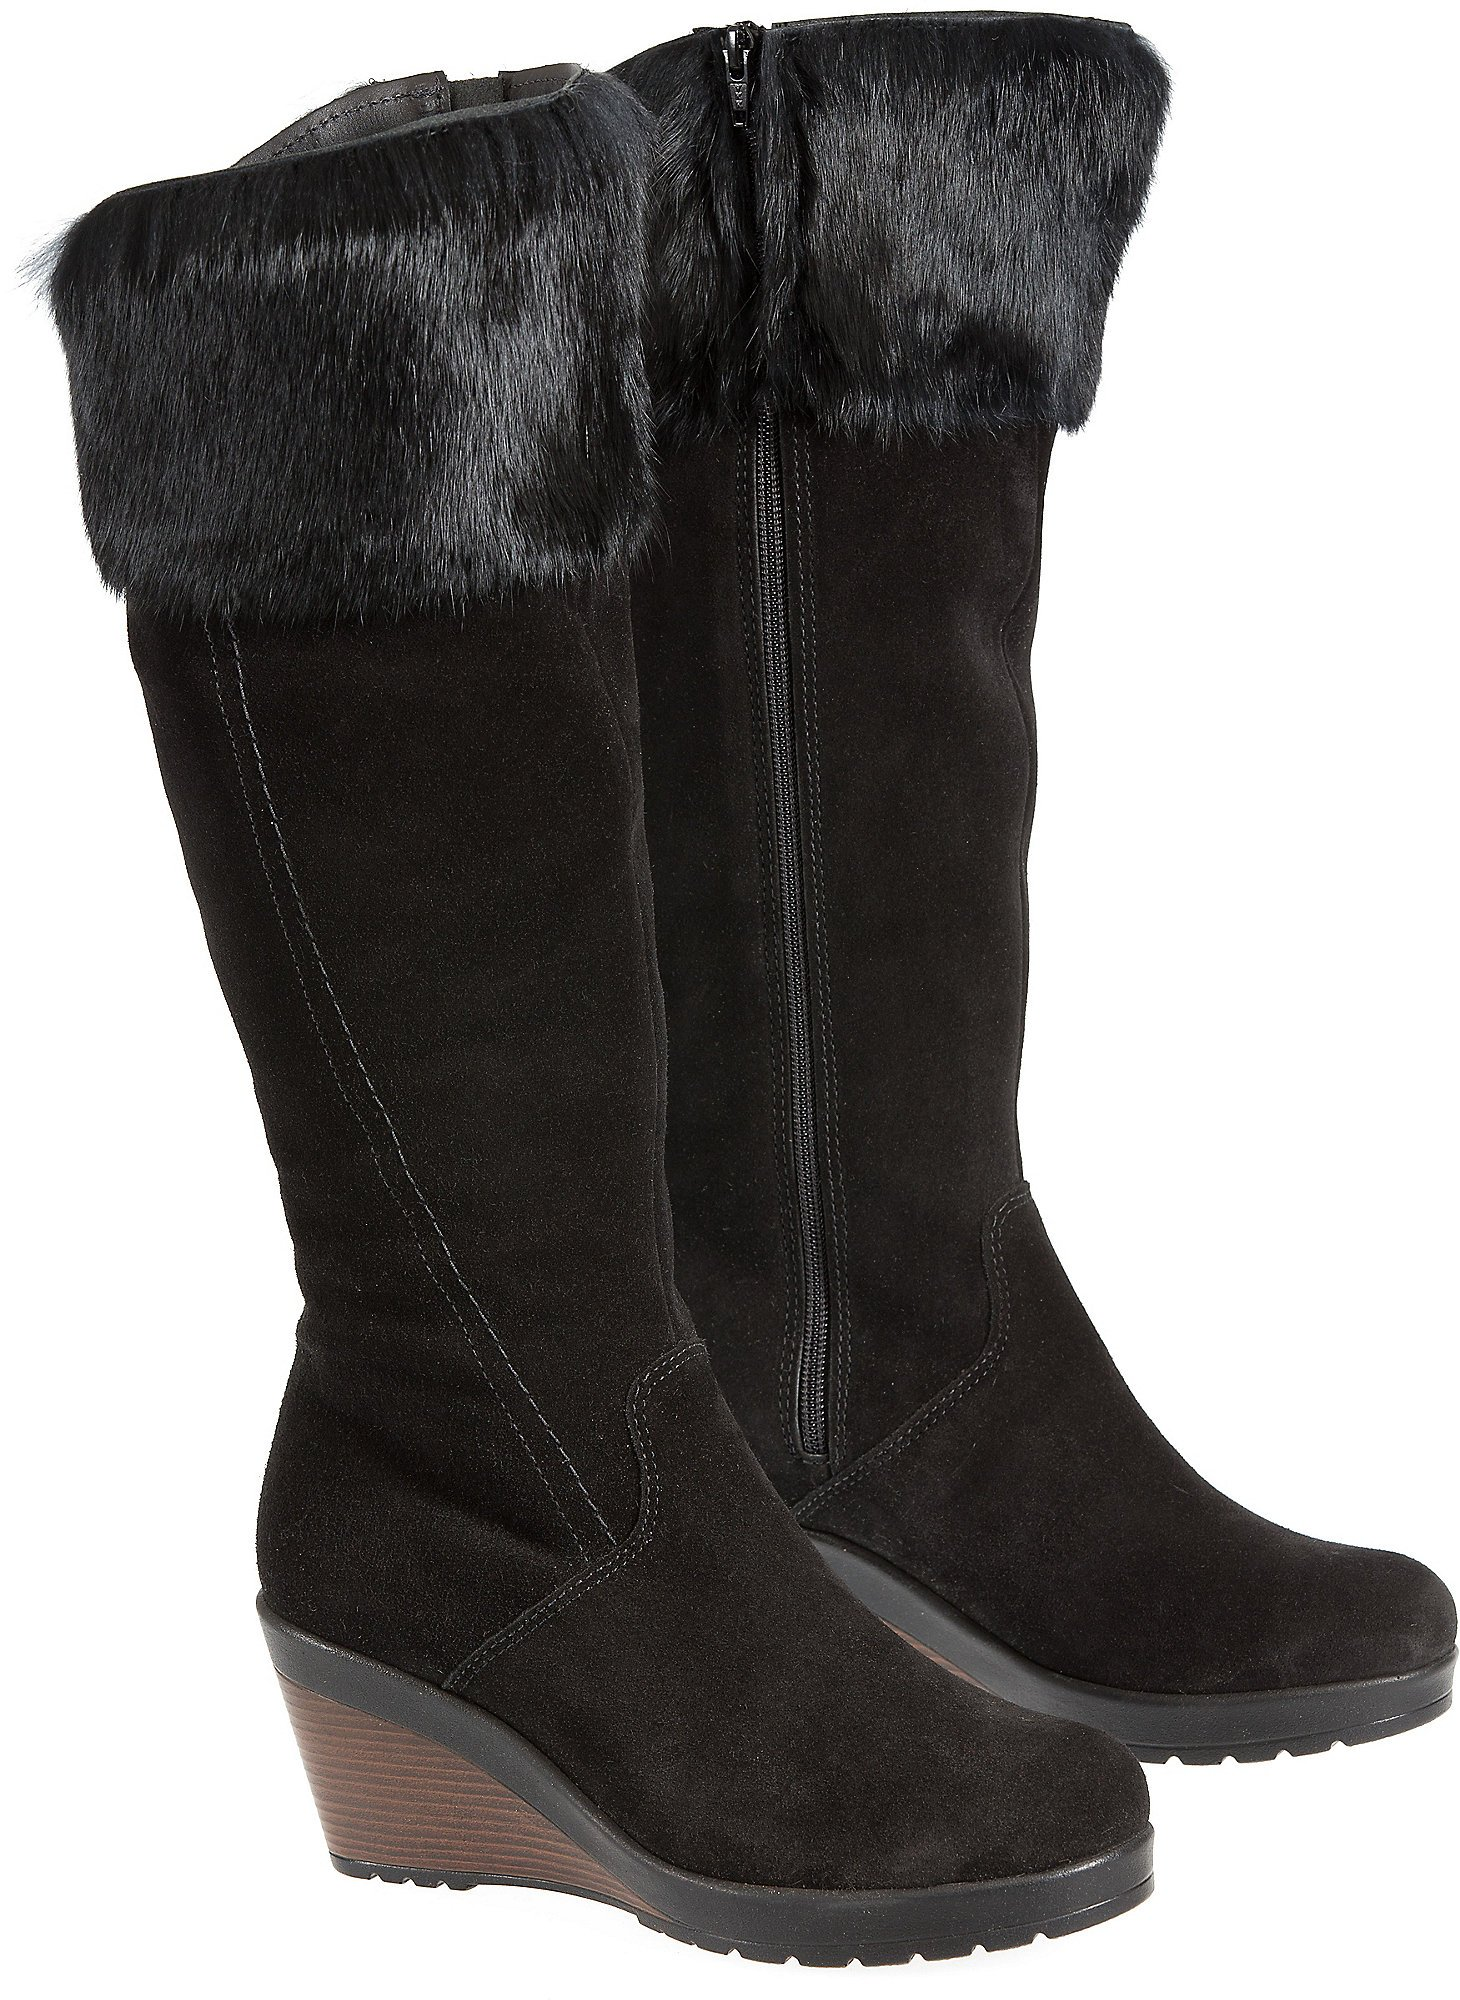 Overland Sheepskin Co. Women's Hershey Wool-Lined Waterproof Suede Boots With Rabbit Fur Trim, Black Suede, Size EU40